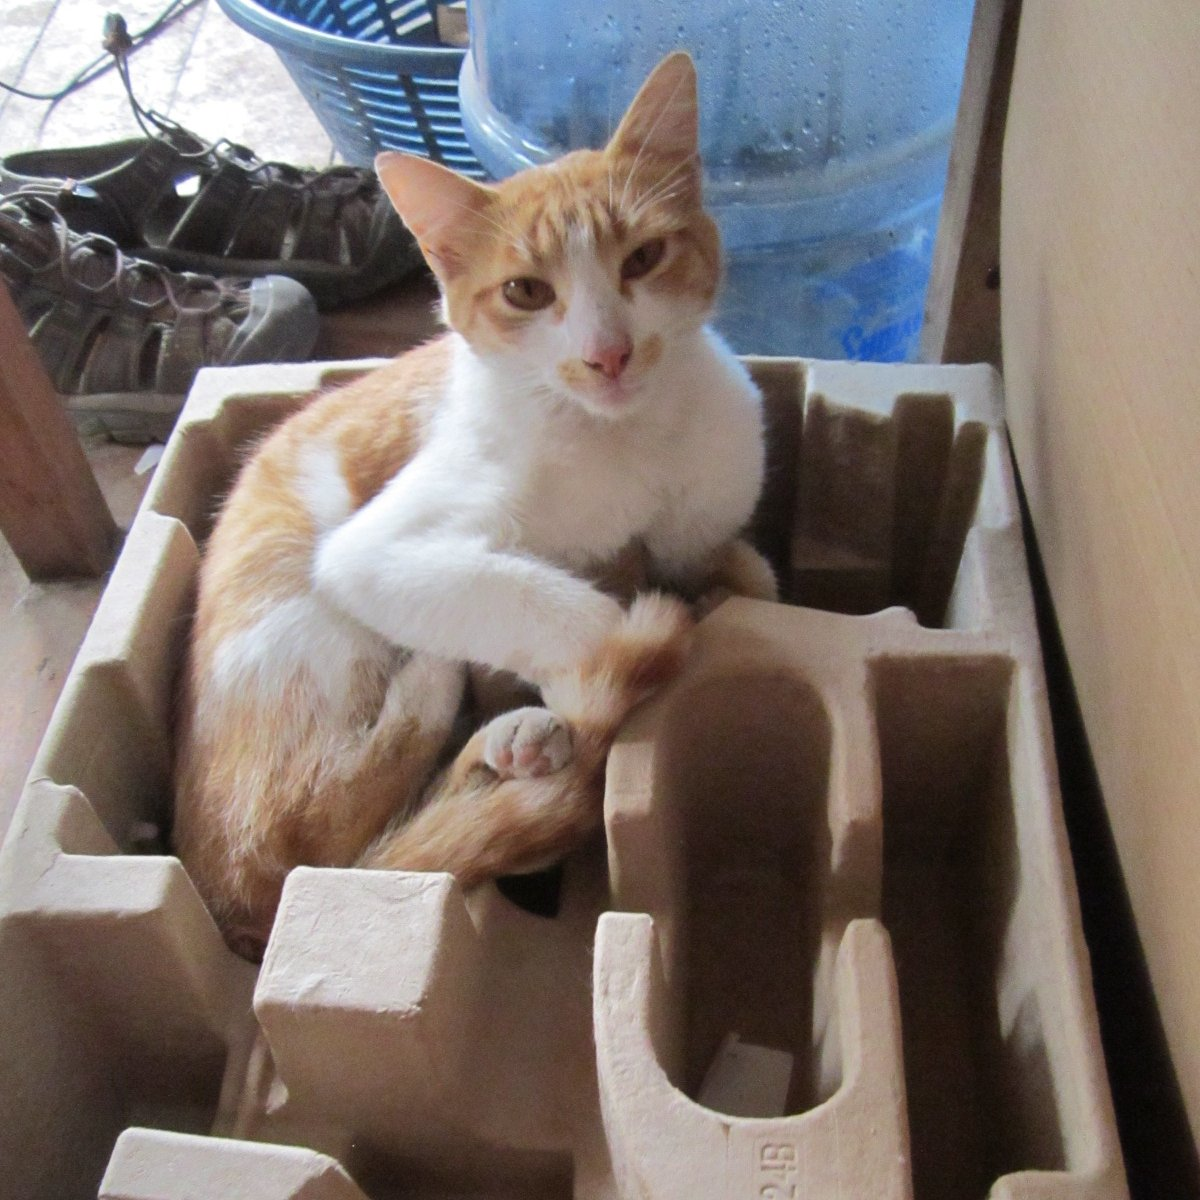 Tarzan is such a little stoner with his moustache and squinty eyes! #Caturday (If it fits, he sits!)